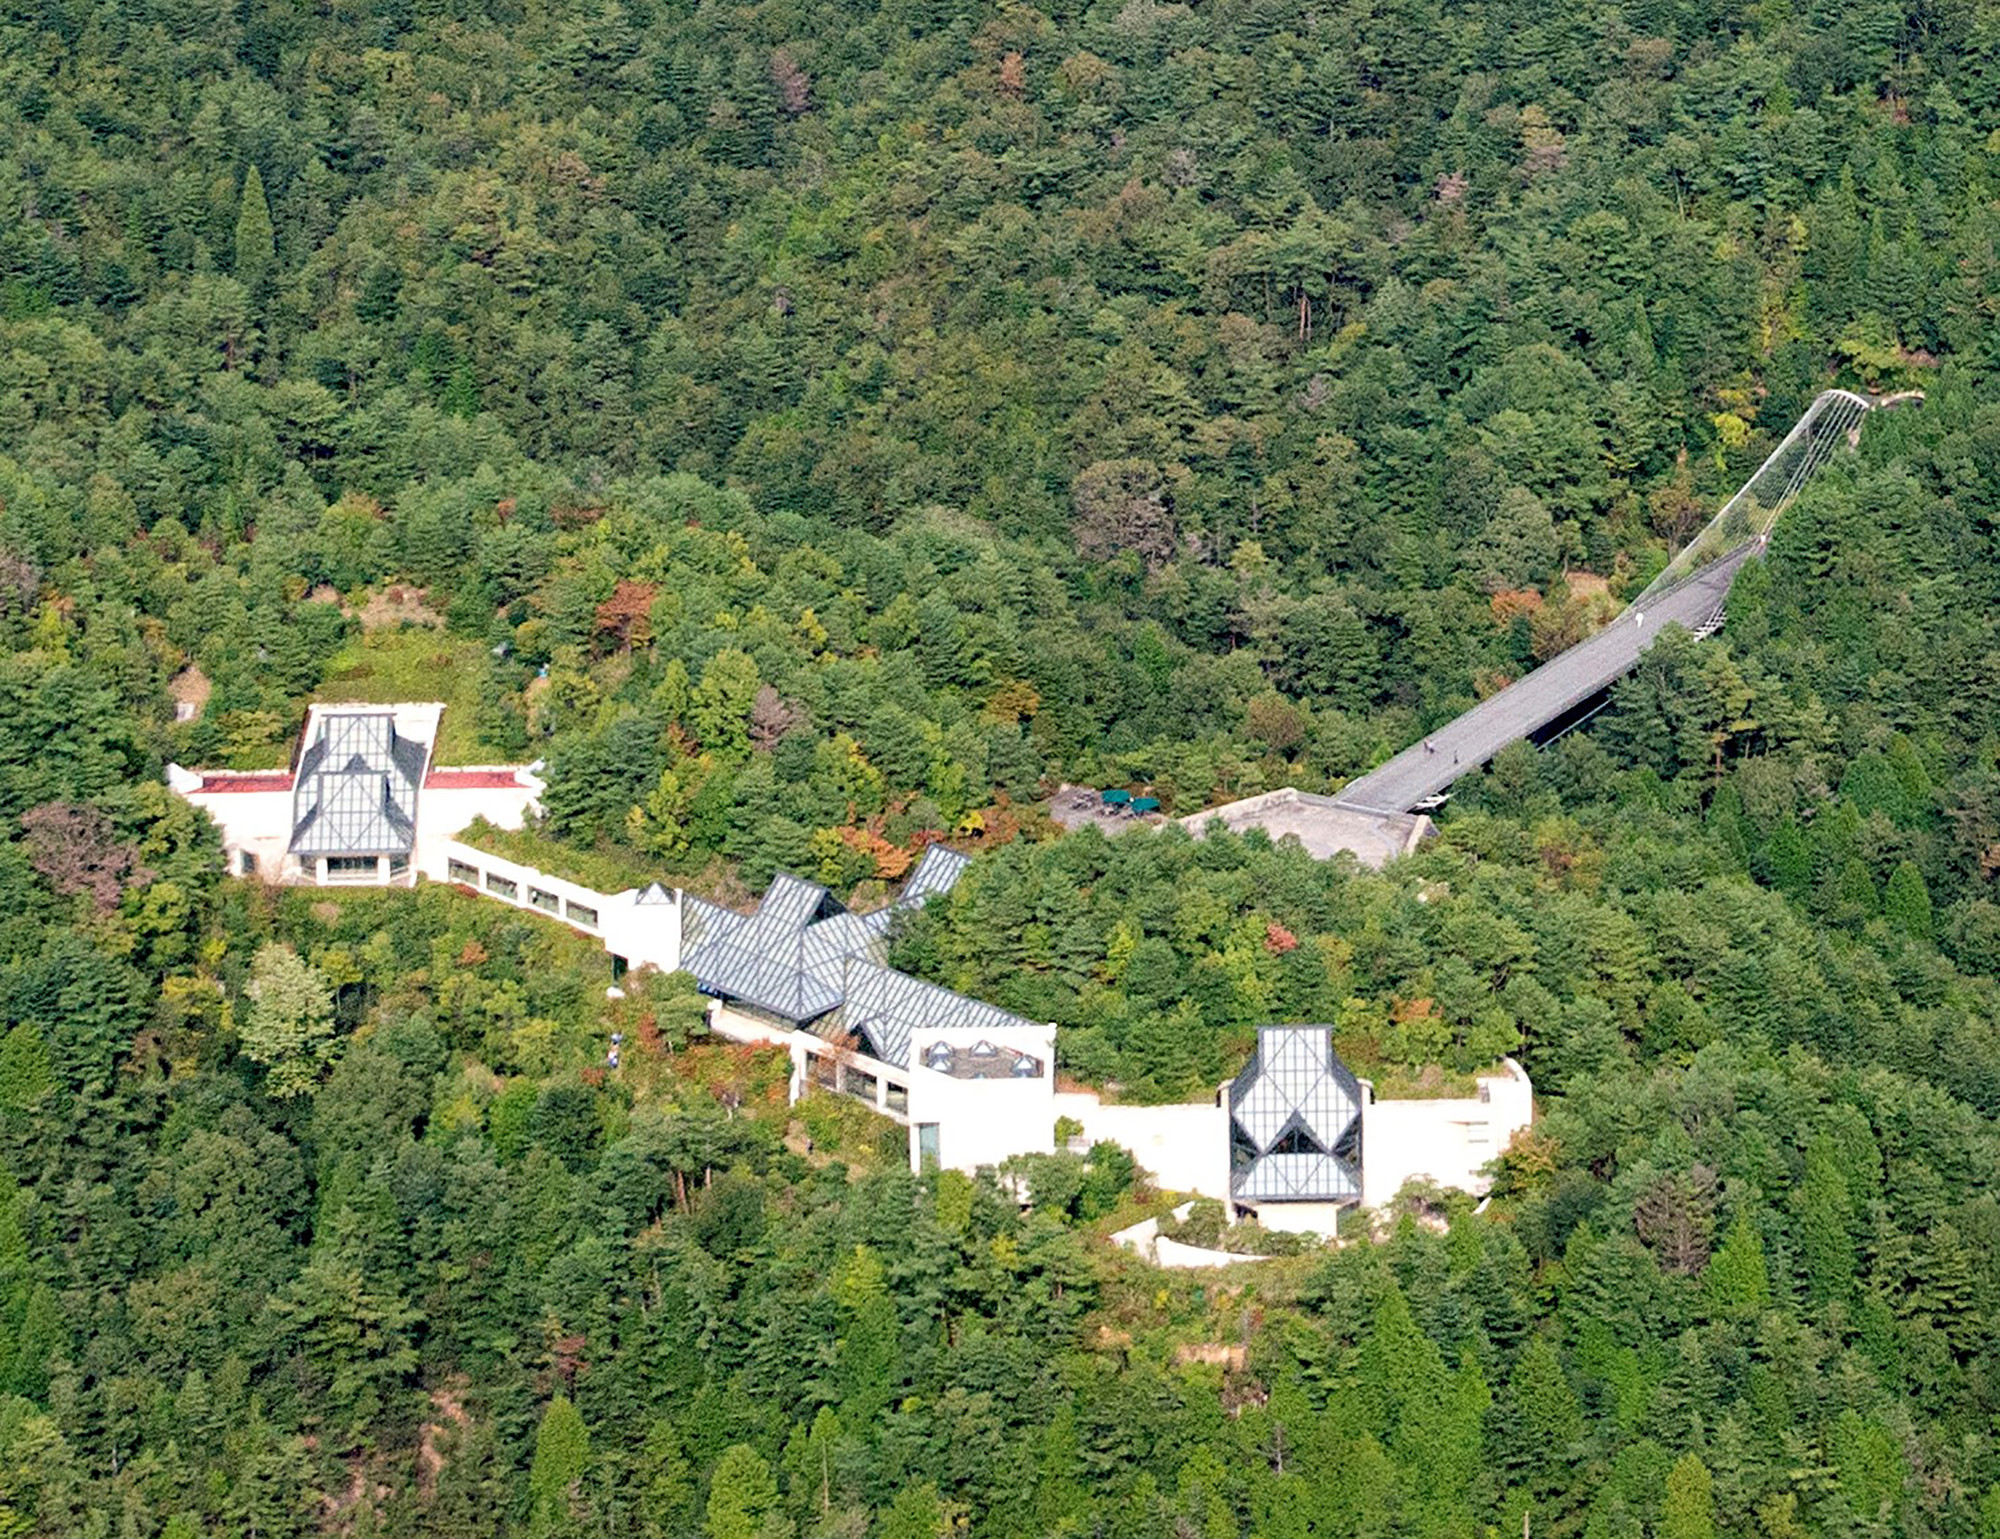 Miho Museum - Valley View